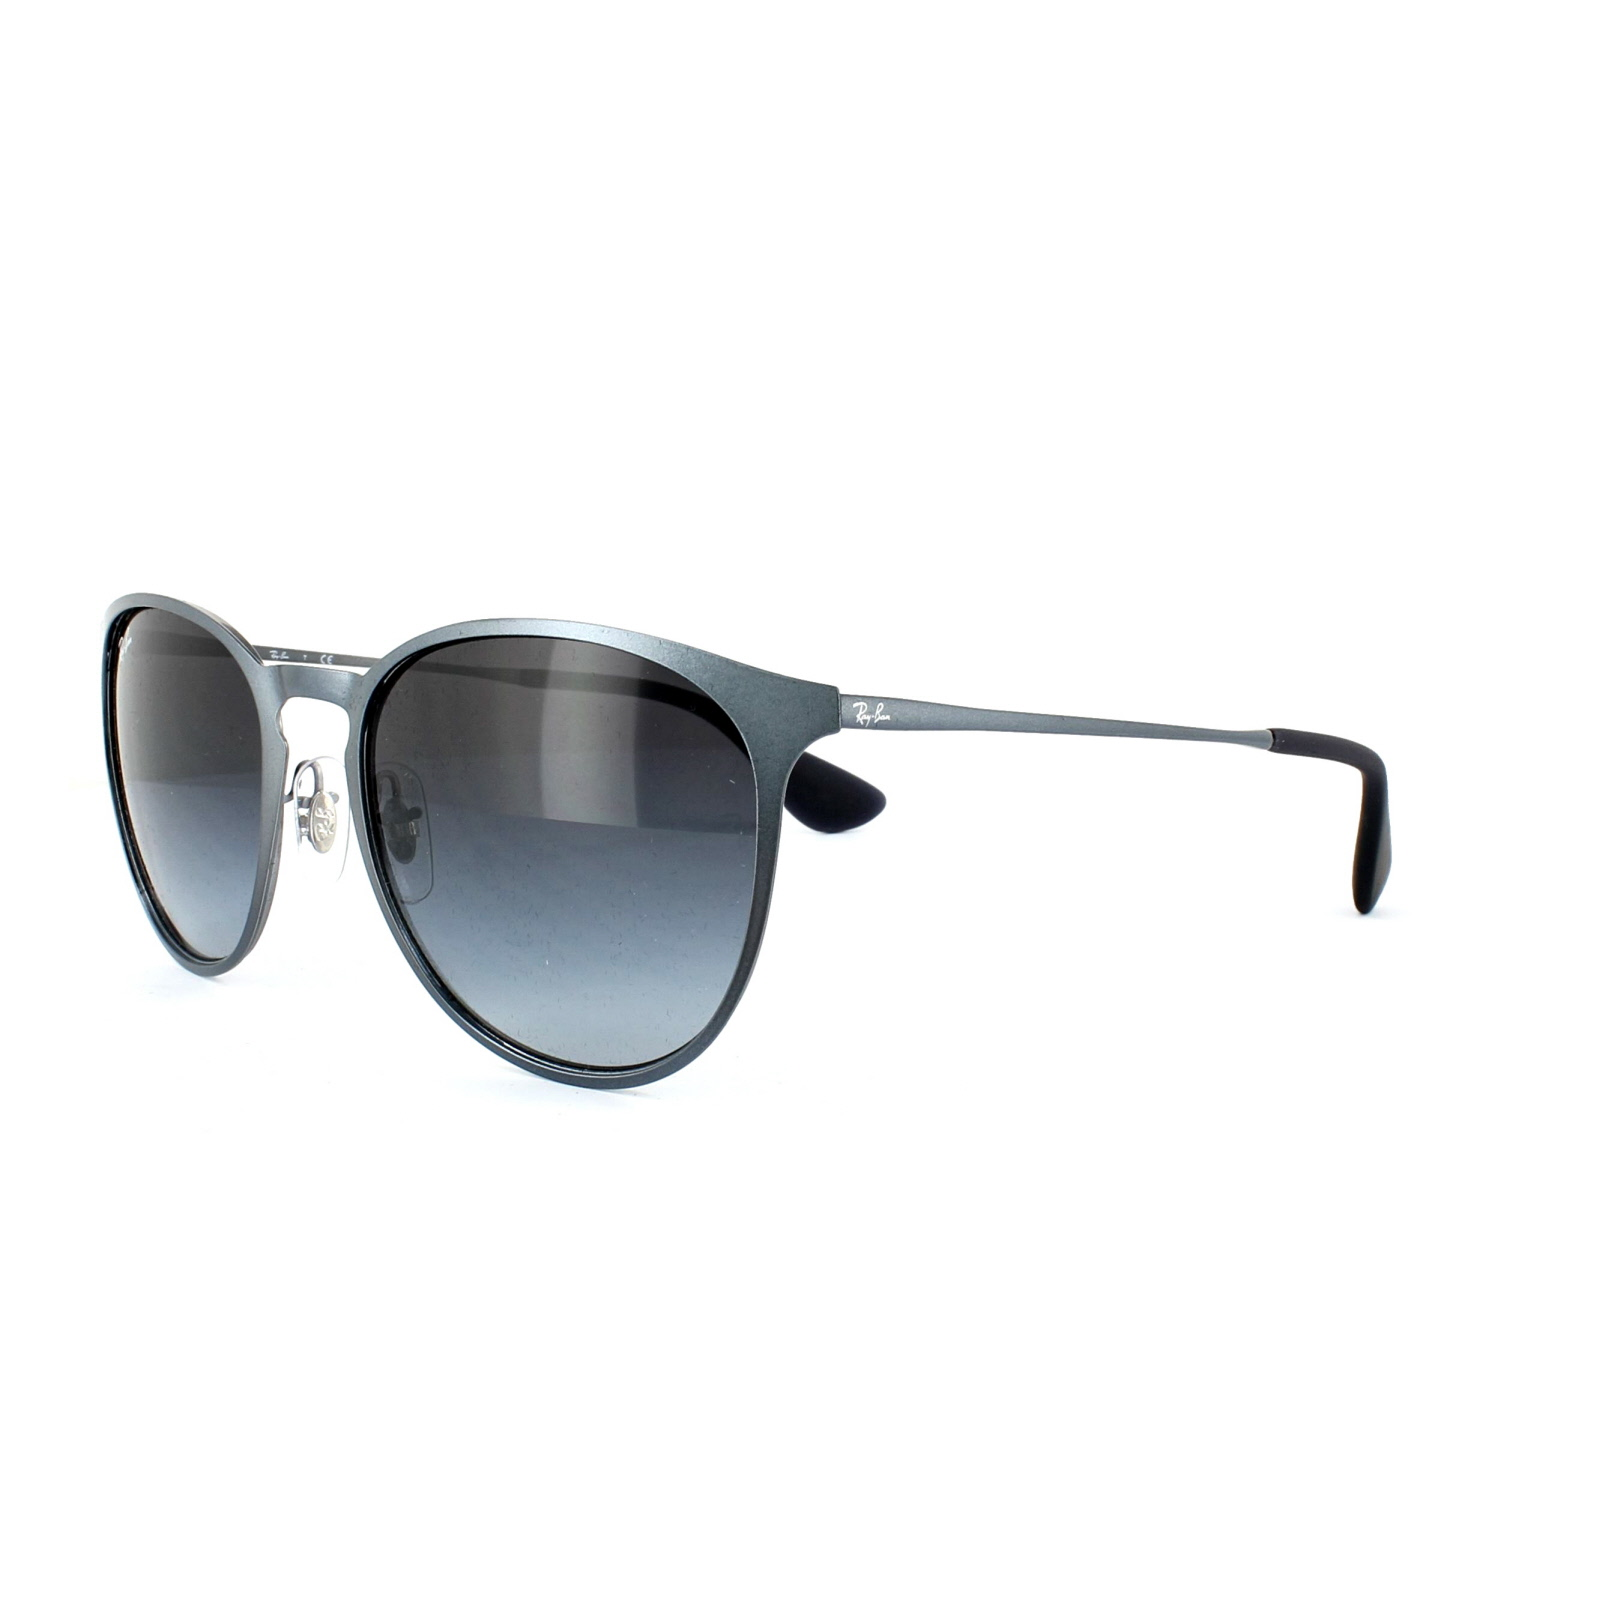 96b3b08f5c0f7 Cheap Ray-Ban Erika Metal 3539 Sunglasses - Discounted Sunglasses